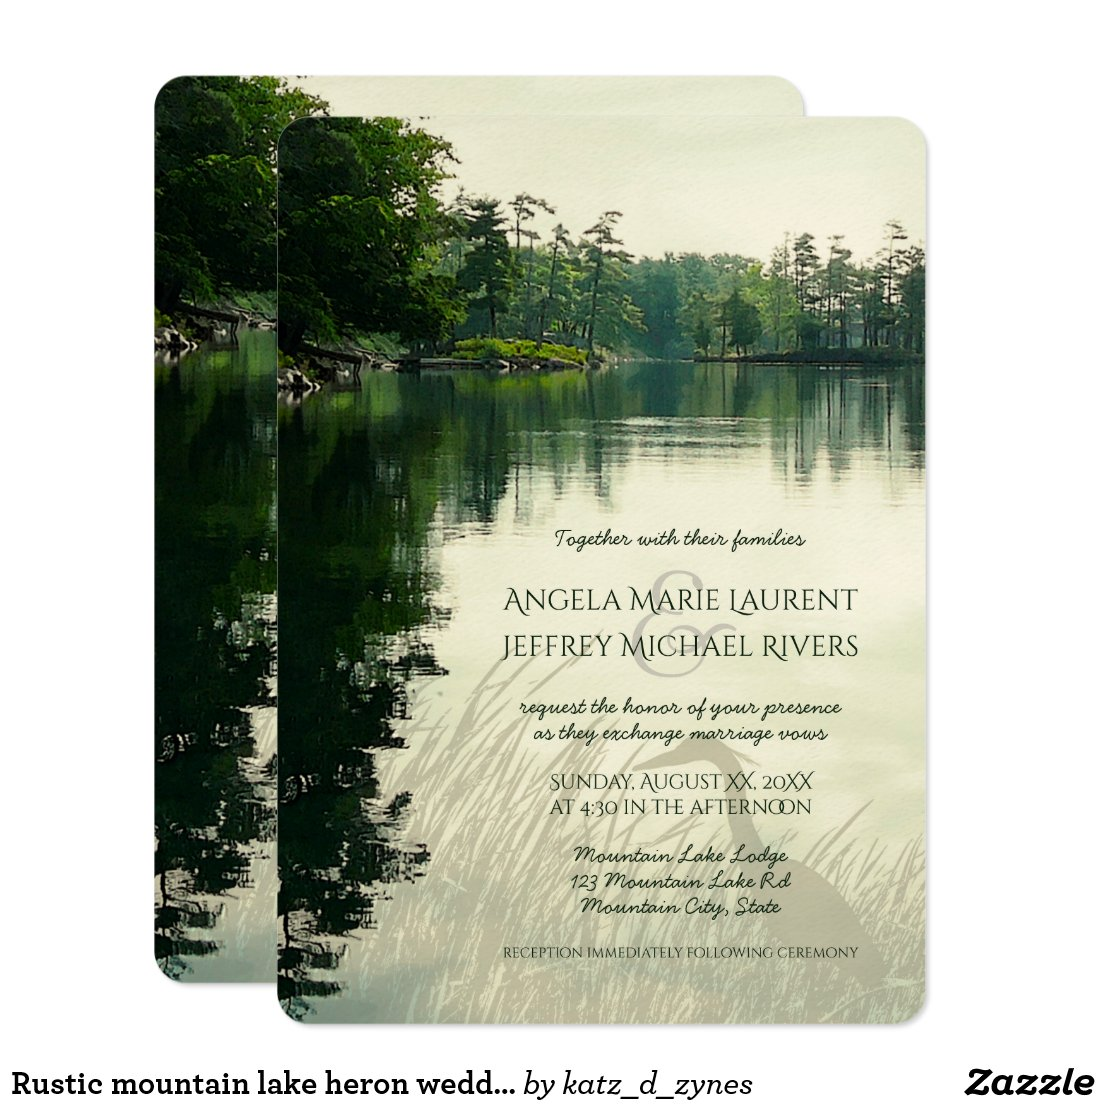 Rustic wedding mountain lake heron silhouette card